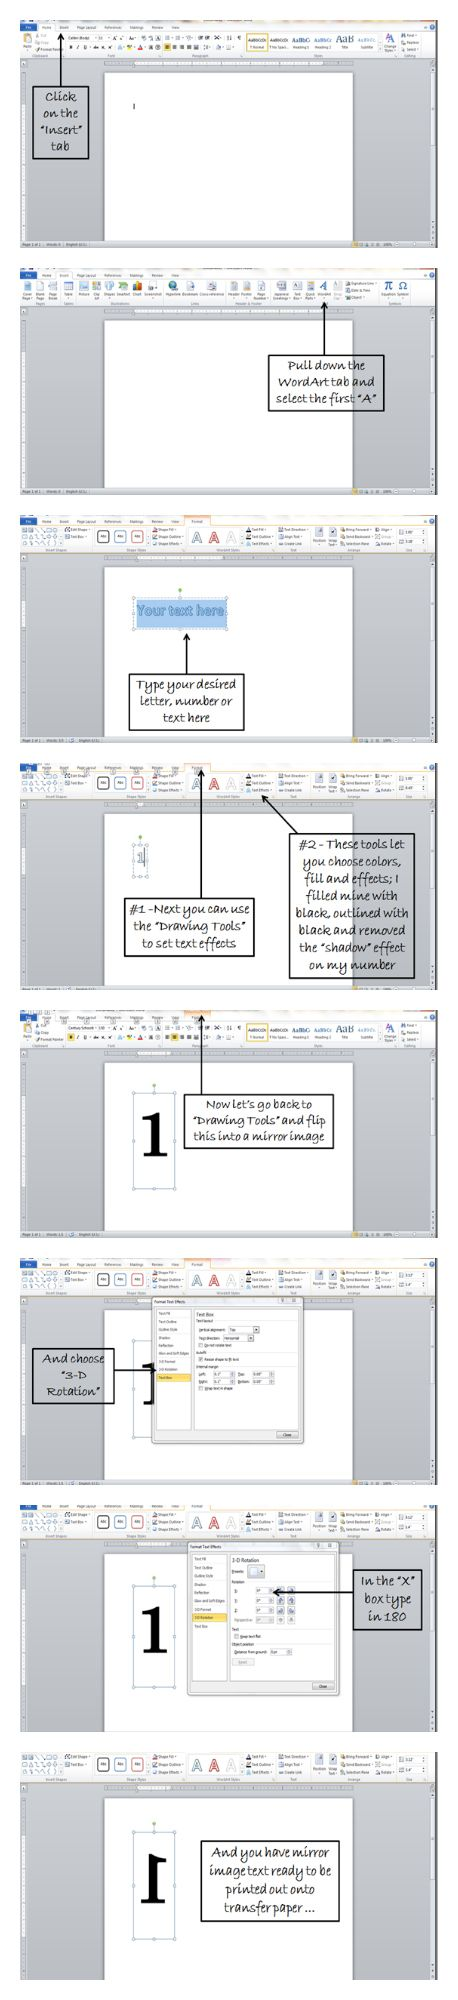 Best 25 microsoft word ideas on pinterest ms office word how to make mirror image text in word step by step easy to magicingreecefo Images